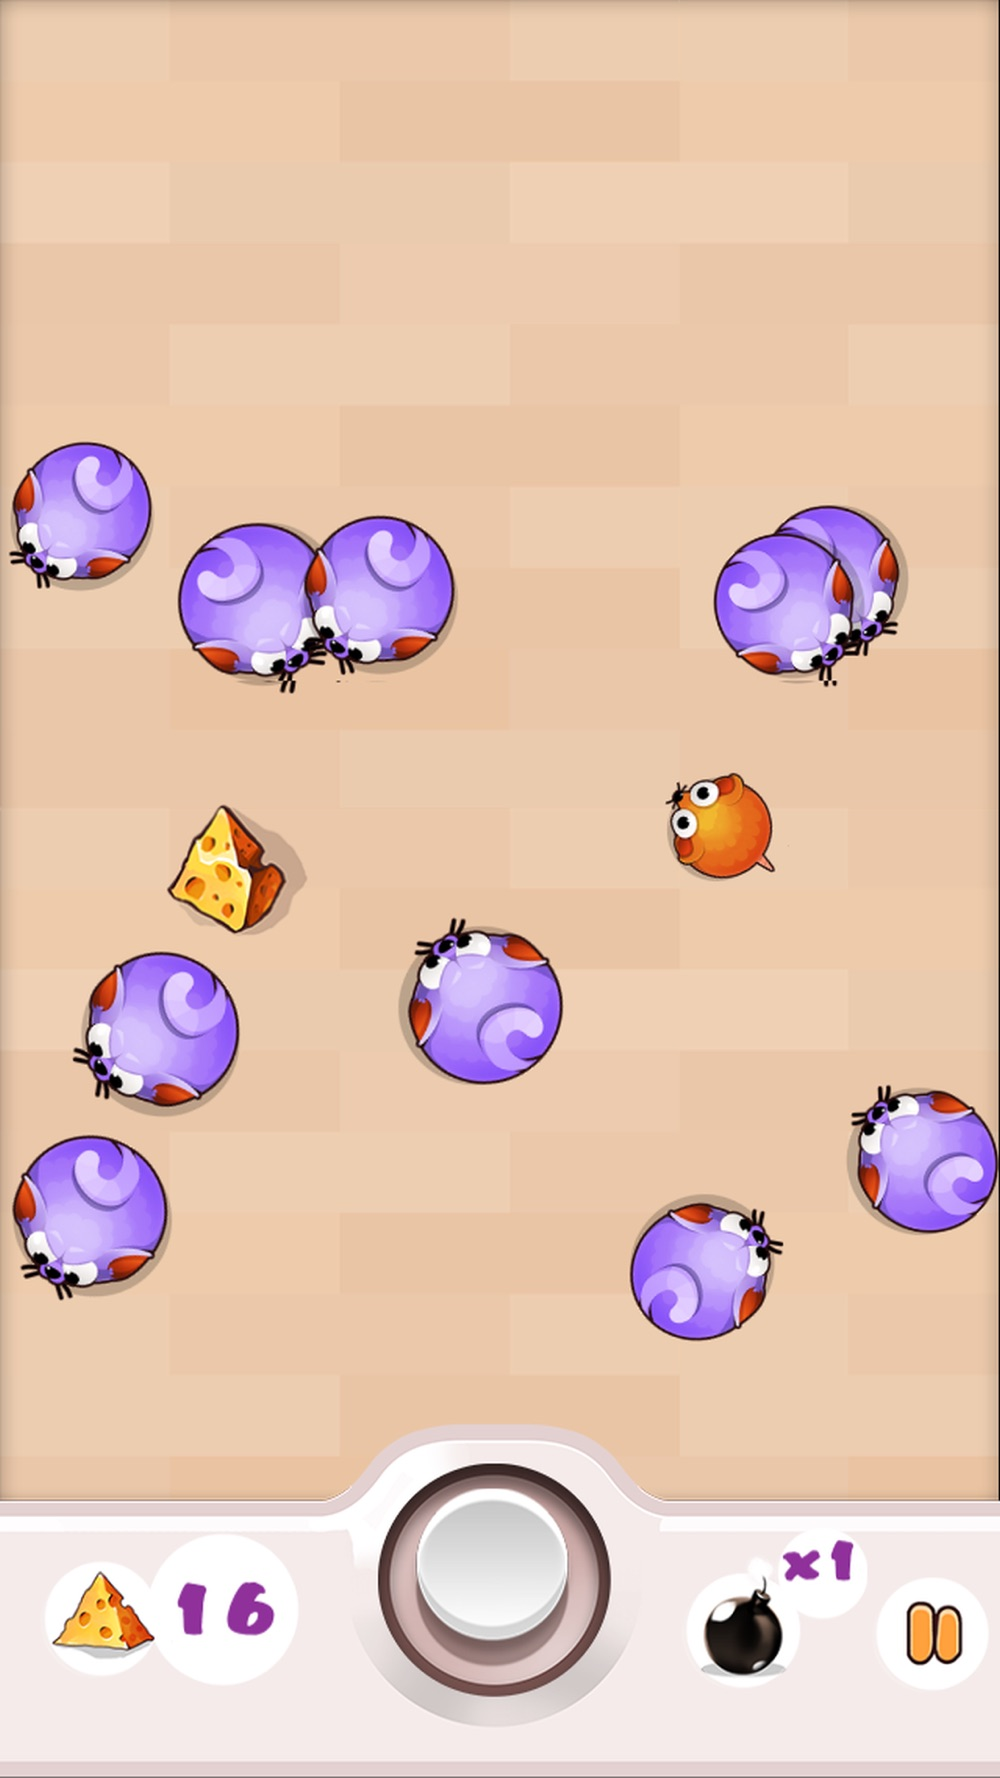 Cheesy Mouse :) - The crazy cats dodge maze game hack tool